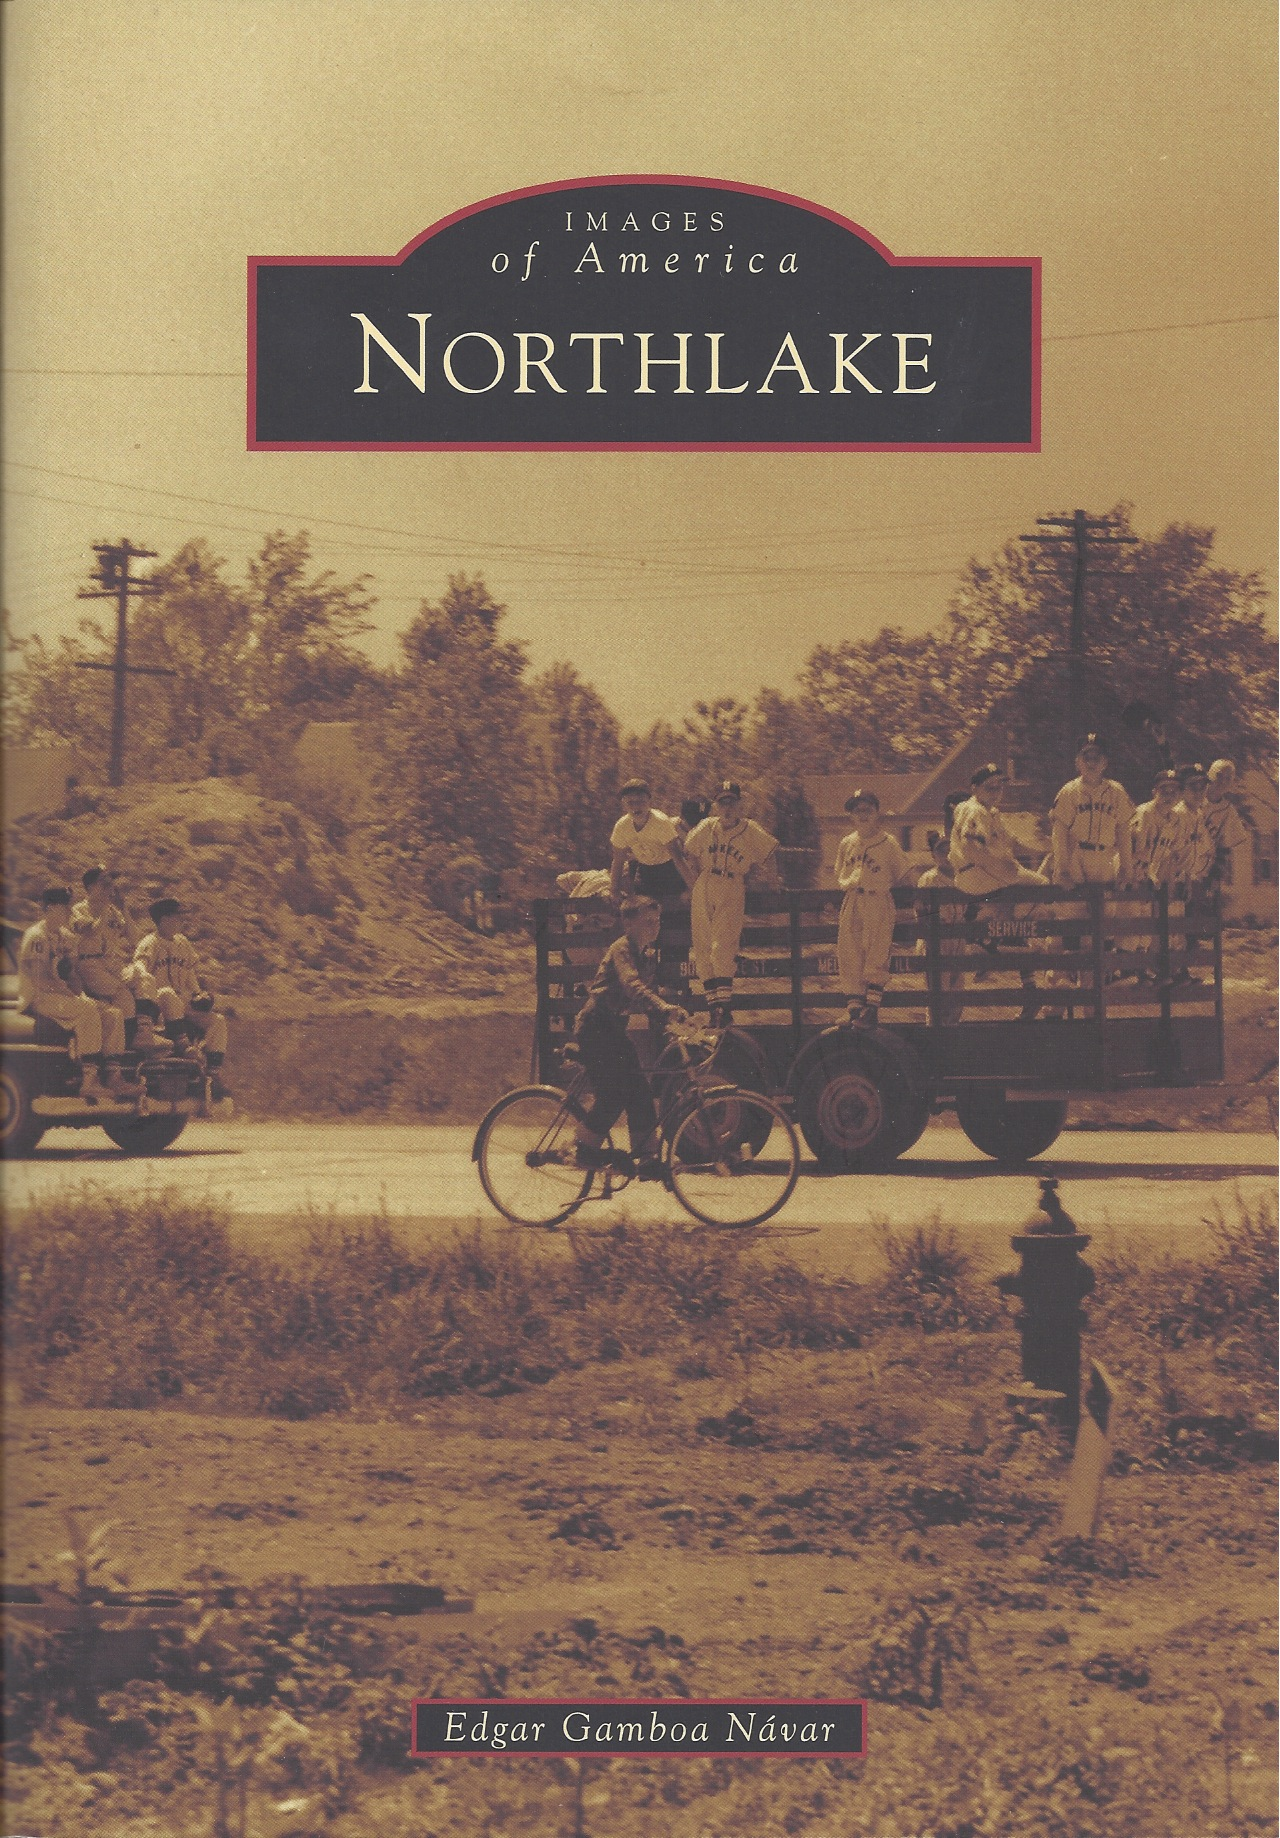 Images of Northlake